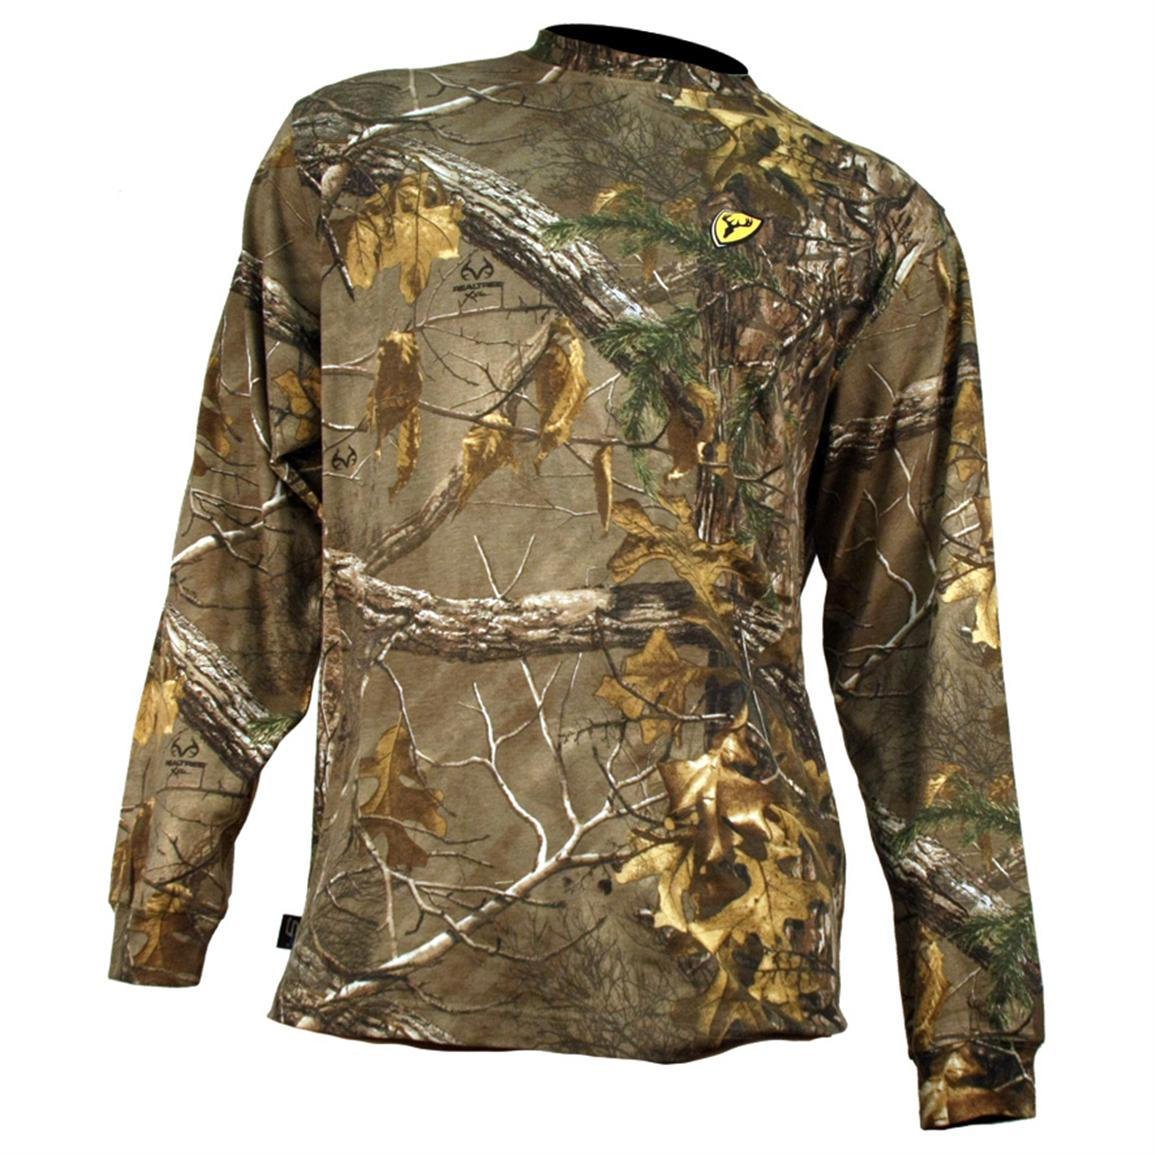 Shop for Hunting Clothing in Hunting. Buy products such as Men's Long Sleeve Camo Tee, Available in Multiple Patterns at Walmart and save.